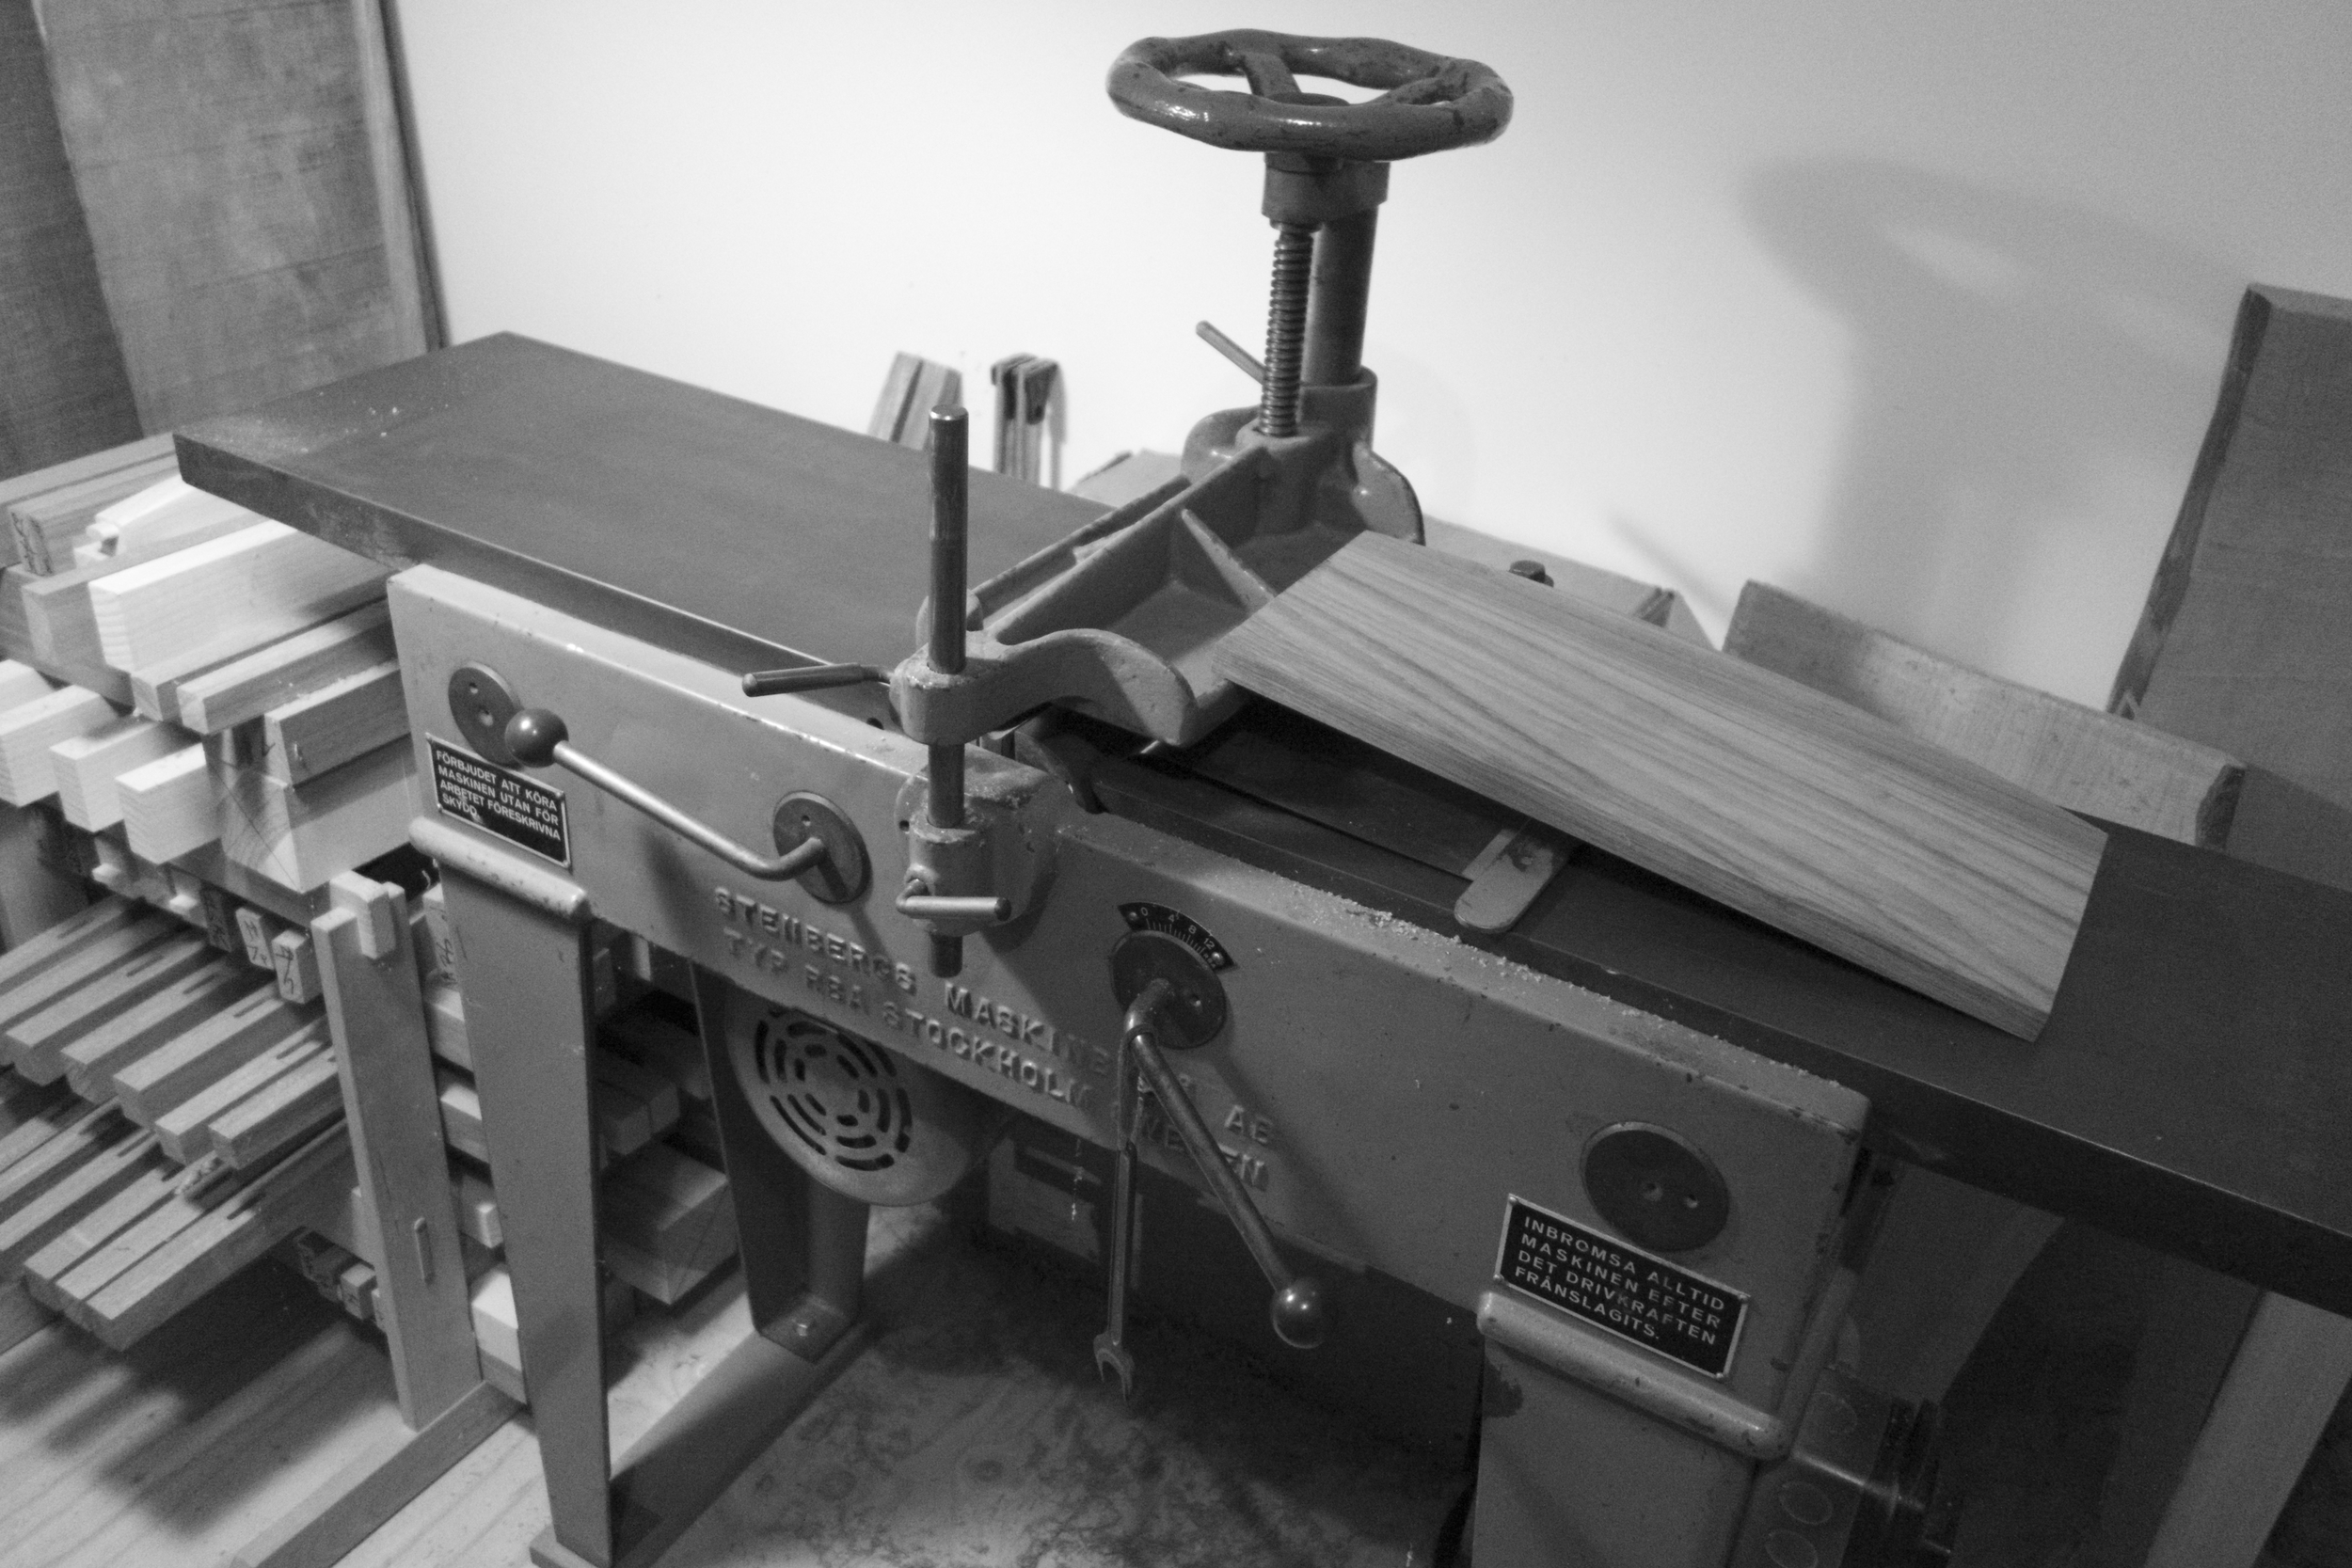 dimensioning stock on Jim's fine old Stenbergs jointer